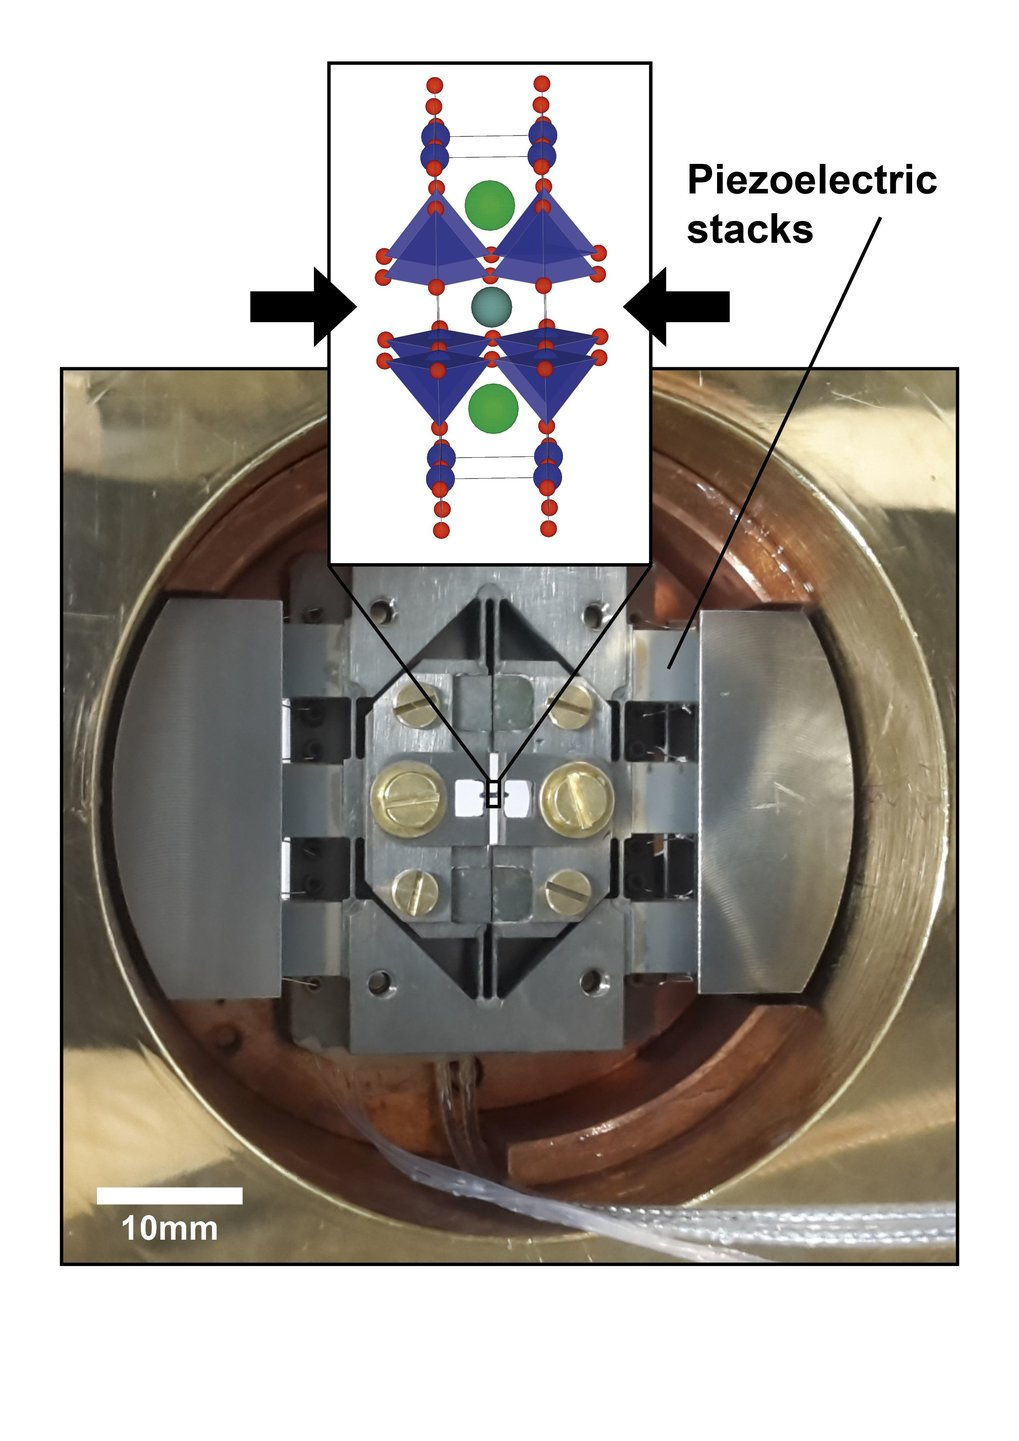 The pressure cell shown in the picture allowed the investigation of the superconductor YBa2Cu3O6.67 under high pressures along an axis in the cuprate layers (picture above). The pressure cell, developed at the Max Planck Institute for Chemical Physics of Solids in Dresden, uses a special technology with piezoelectric elements for this purpose.